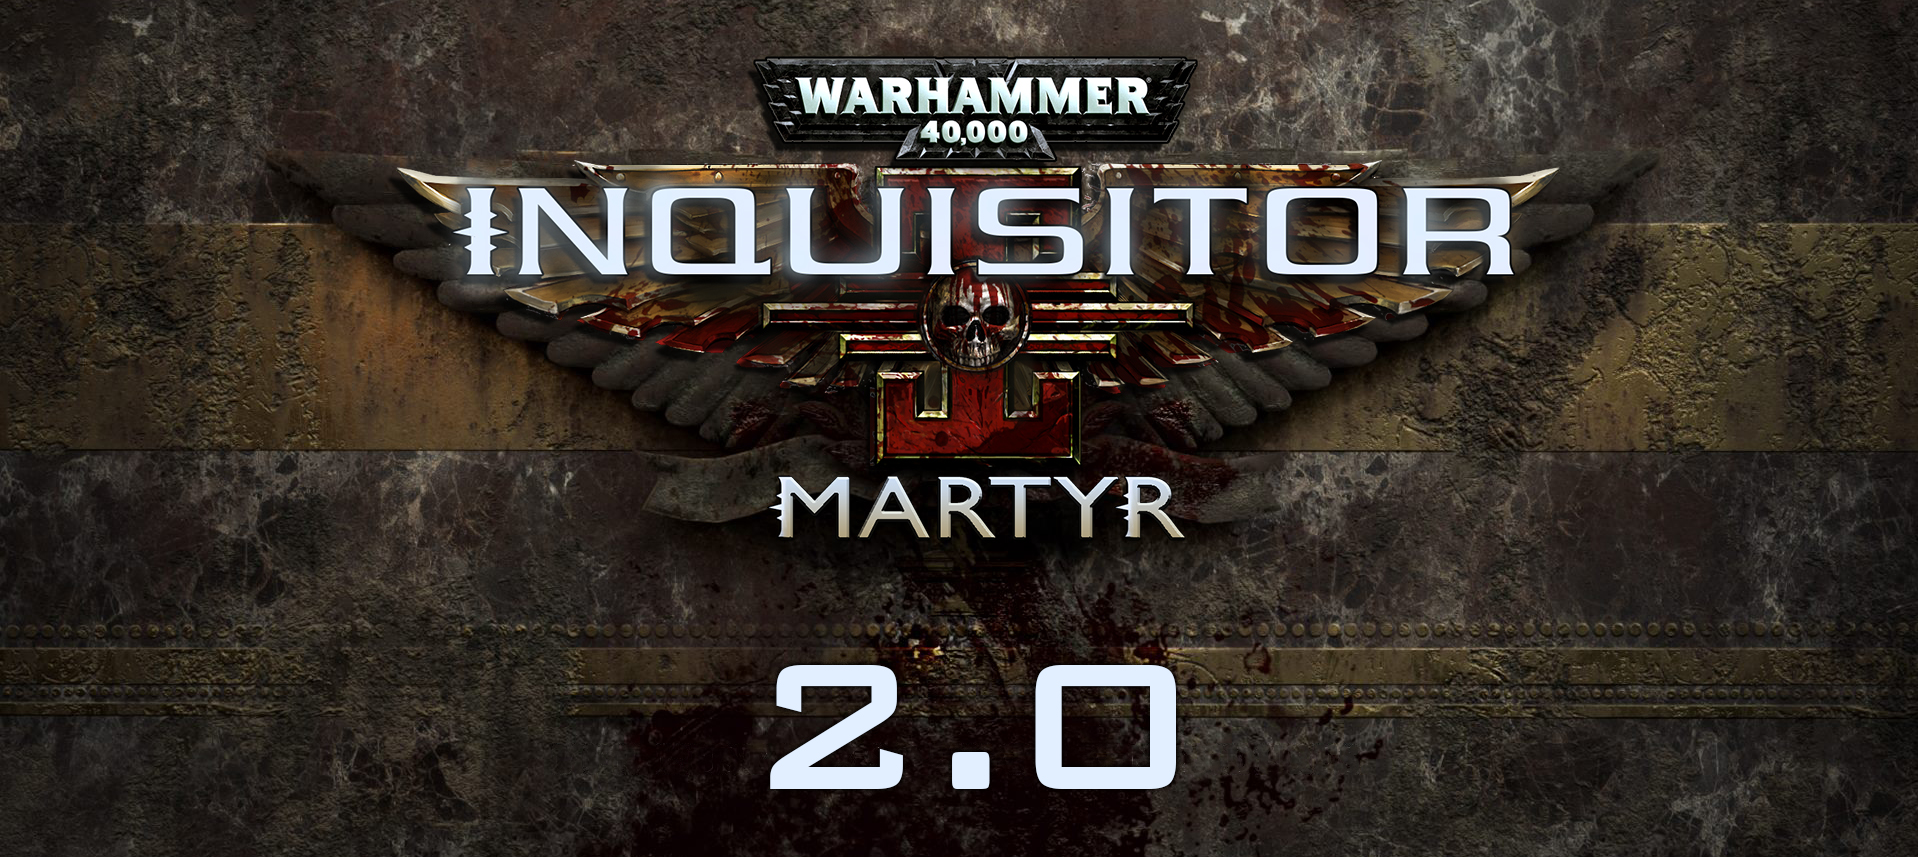 Warhammer 40,000: Inquisitor - Martyr 2 0 Update Heavily